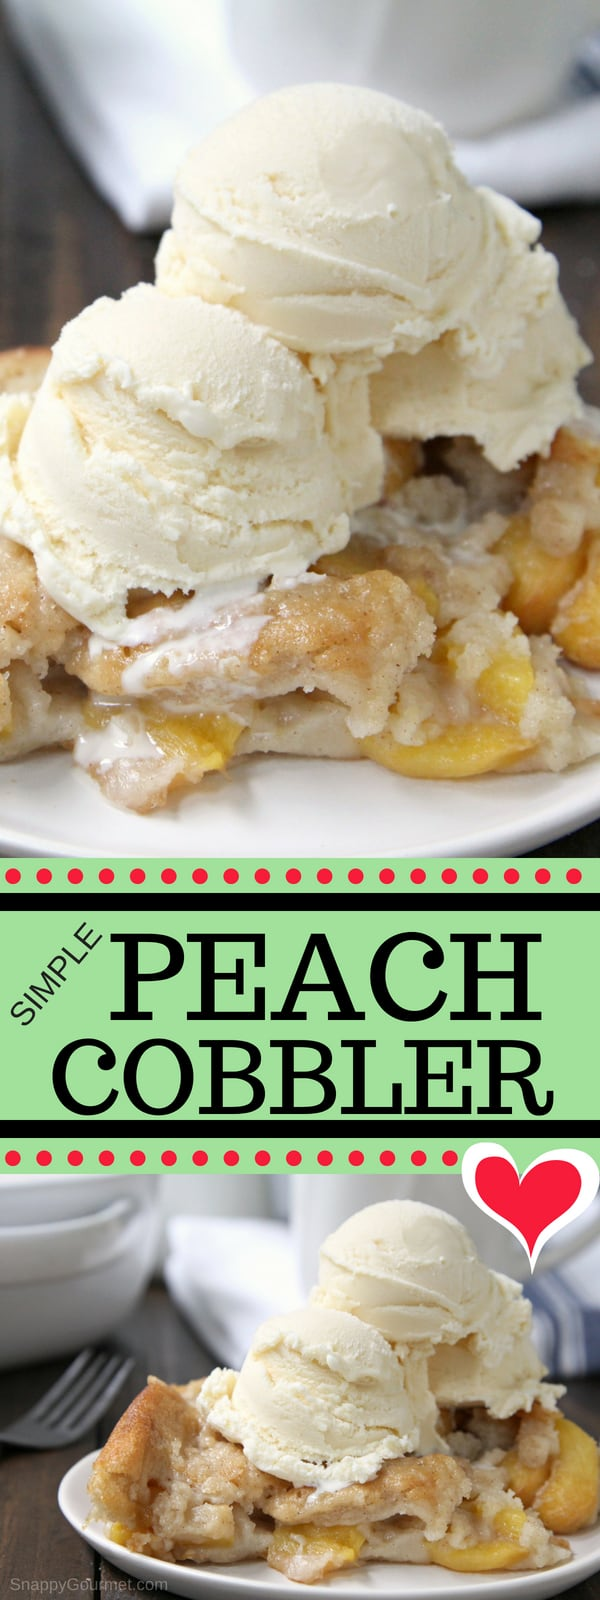 Simple Peach Cobbler recipe - how to make an easy homemade peach cobbler with fresh peaches